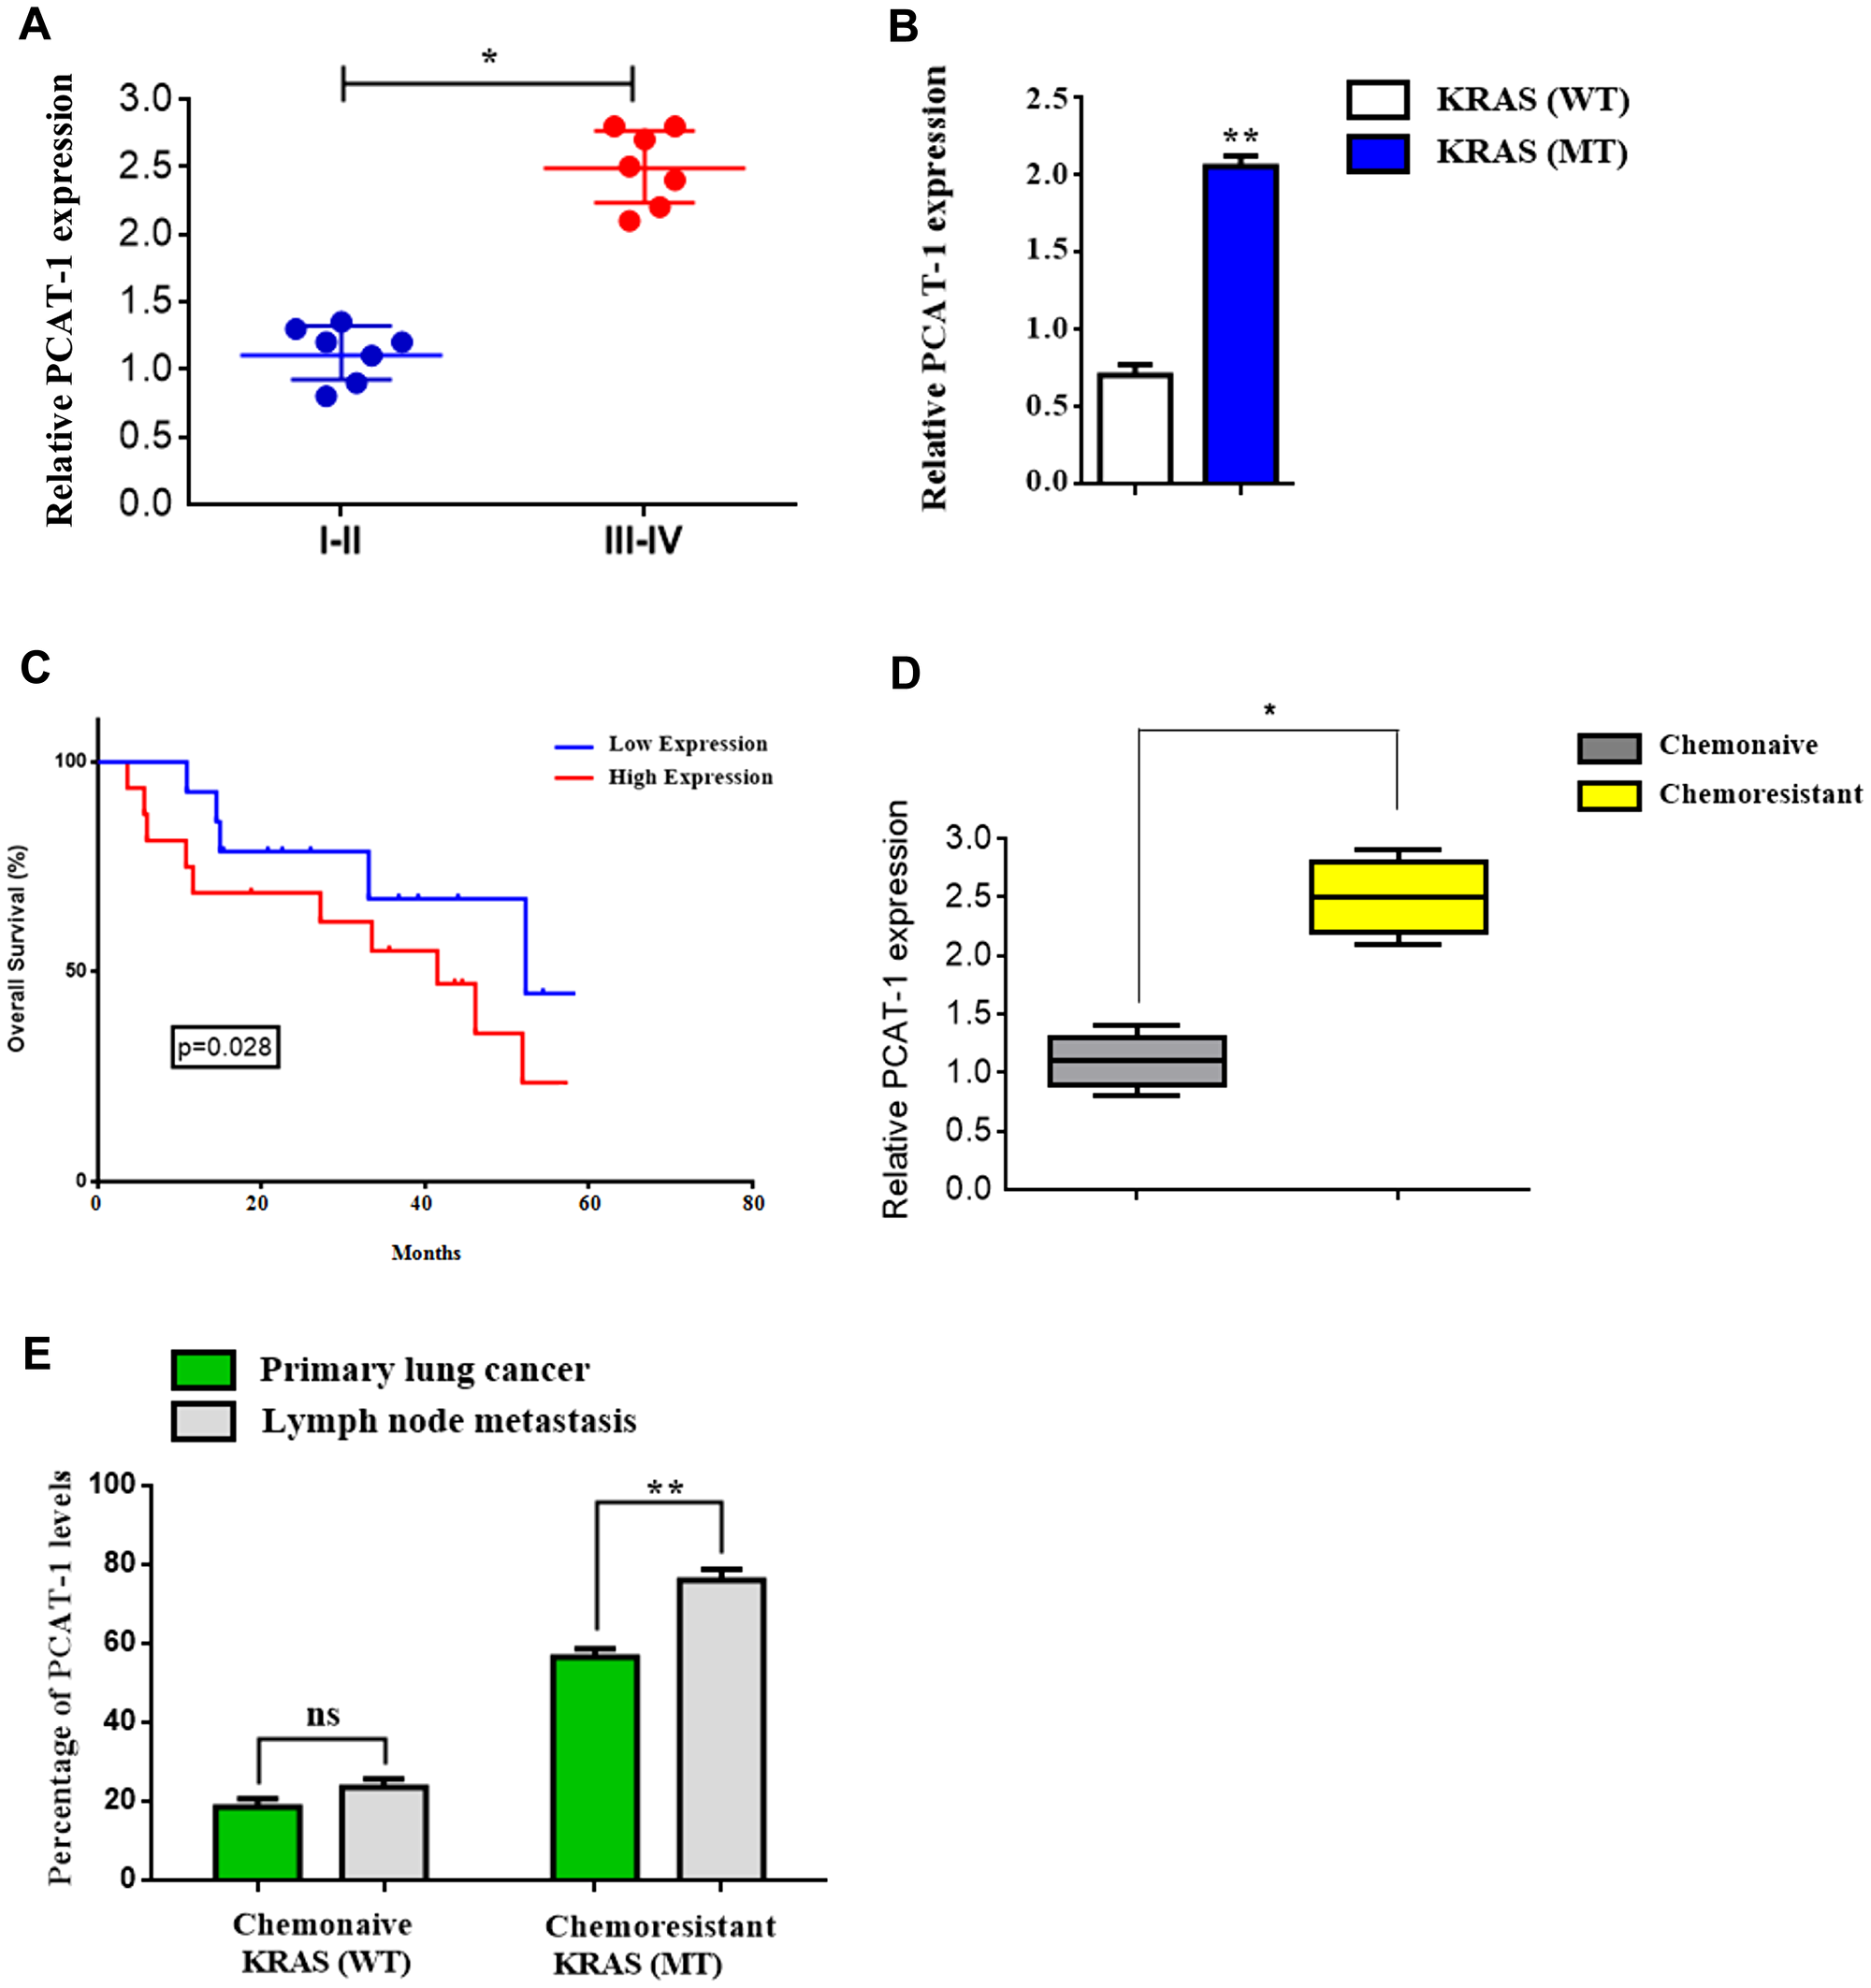 Mutant Kras-related chemoresistance is associated with increased expression of lncRNA PCAT-1 in metastatic lung cancer.